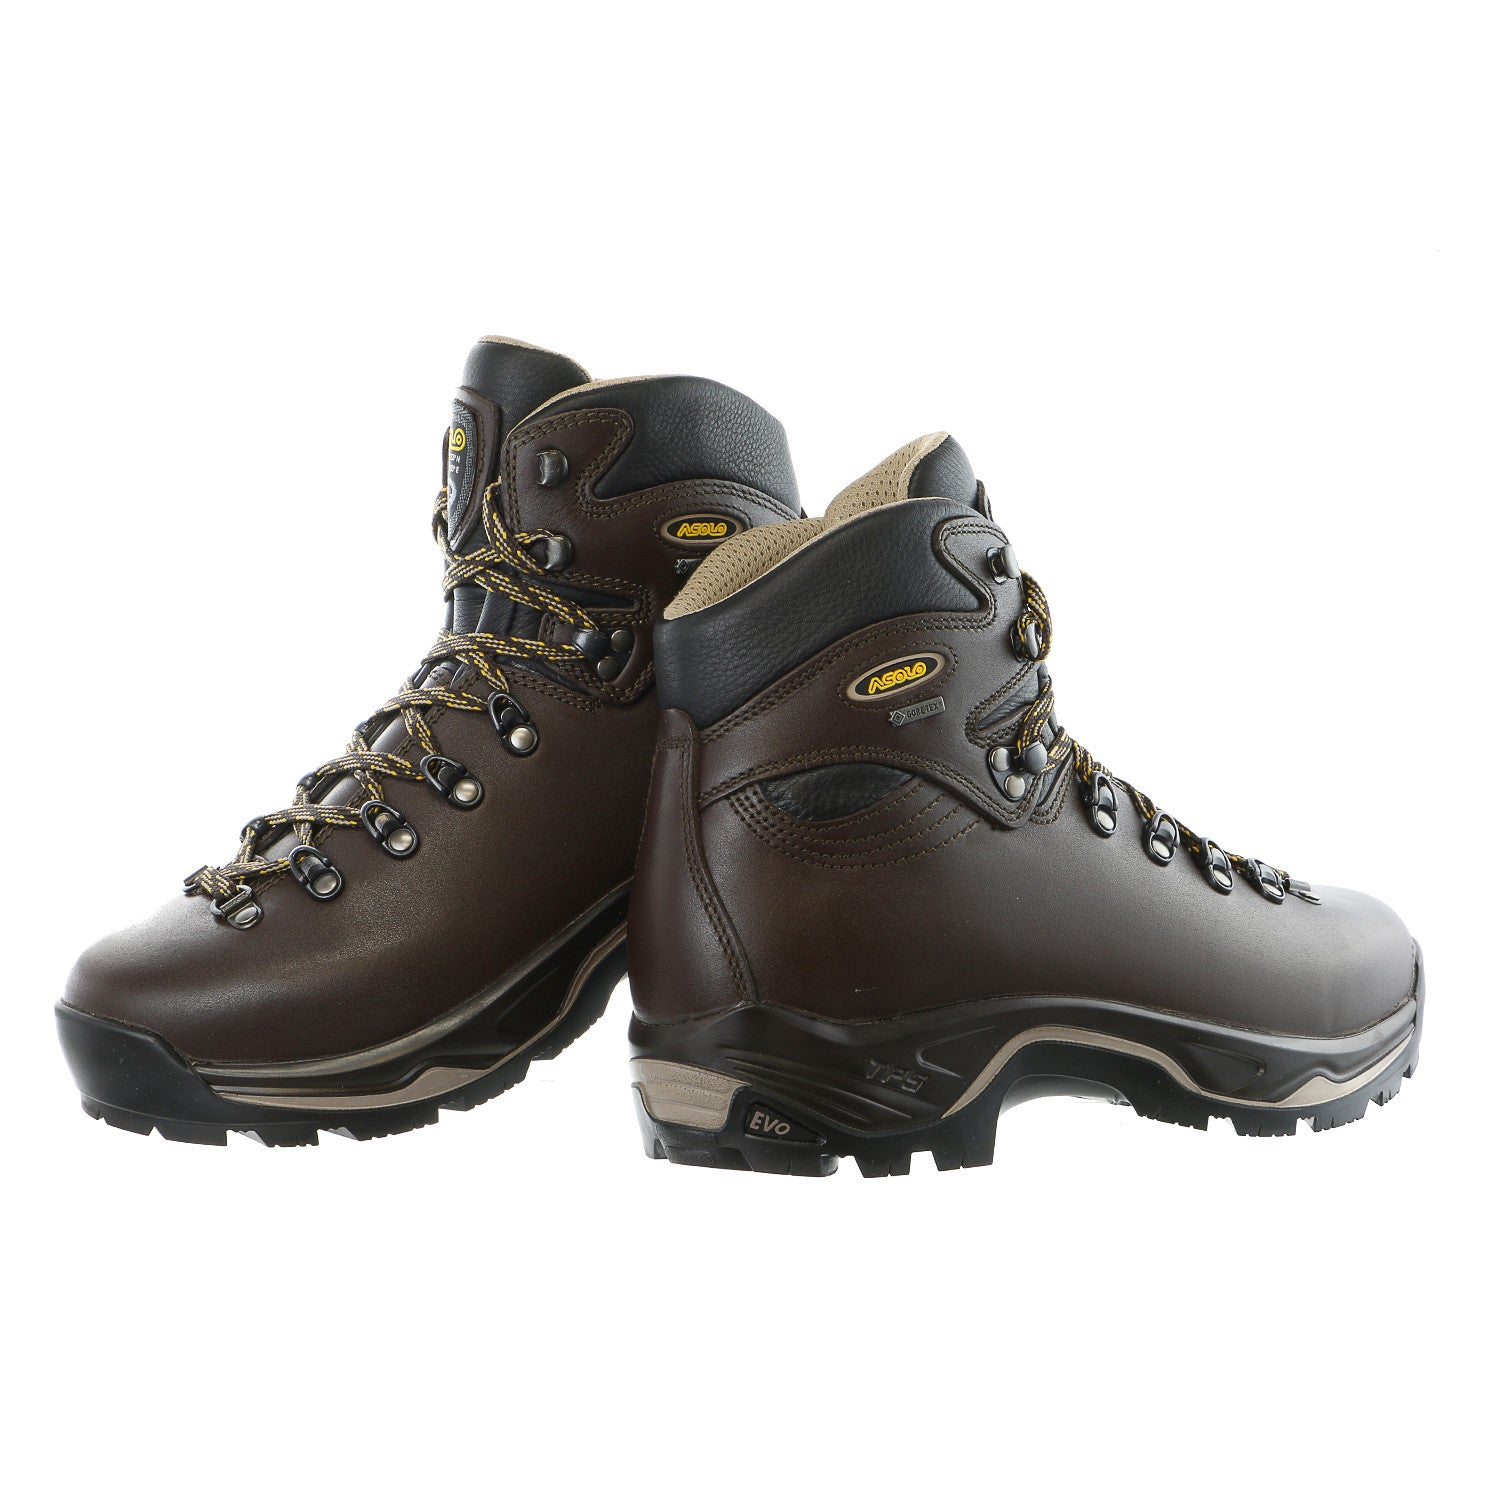 1bccb6aaca9 Asolo TPS 520 GV Evo Hiking Boot - Men's